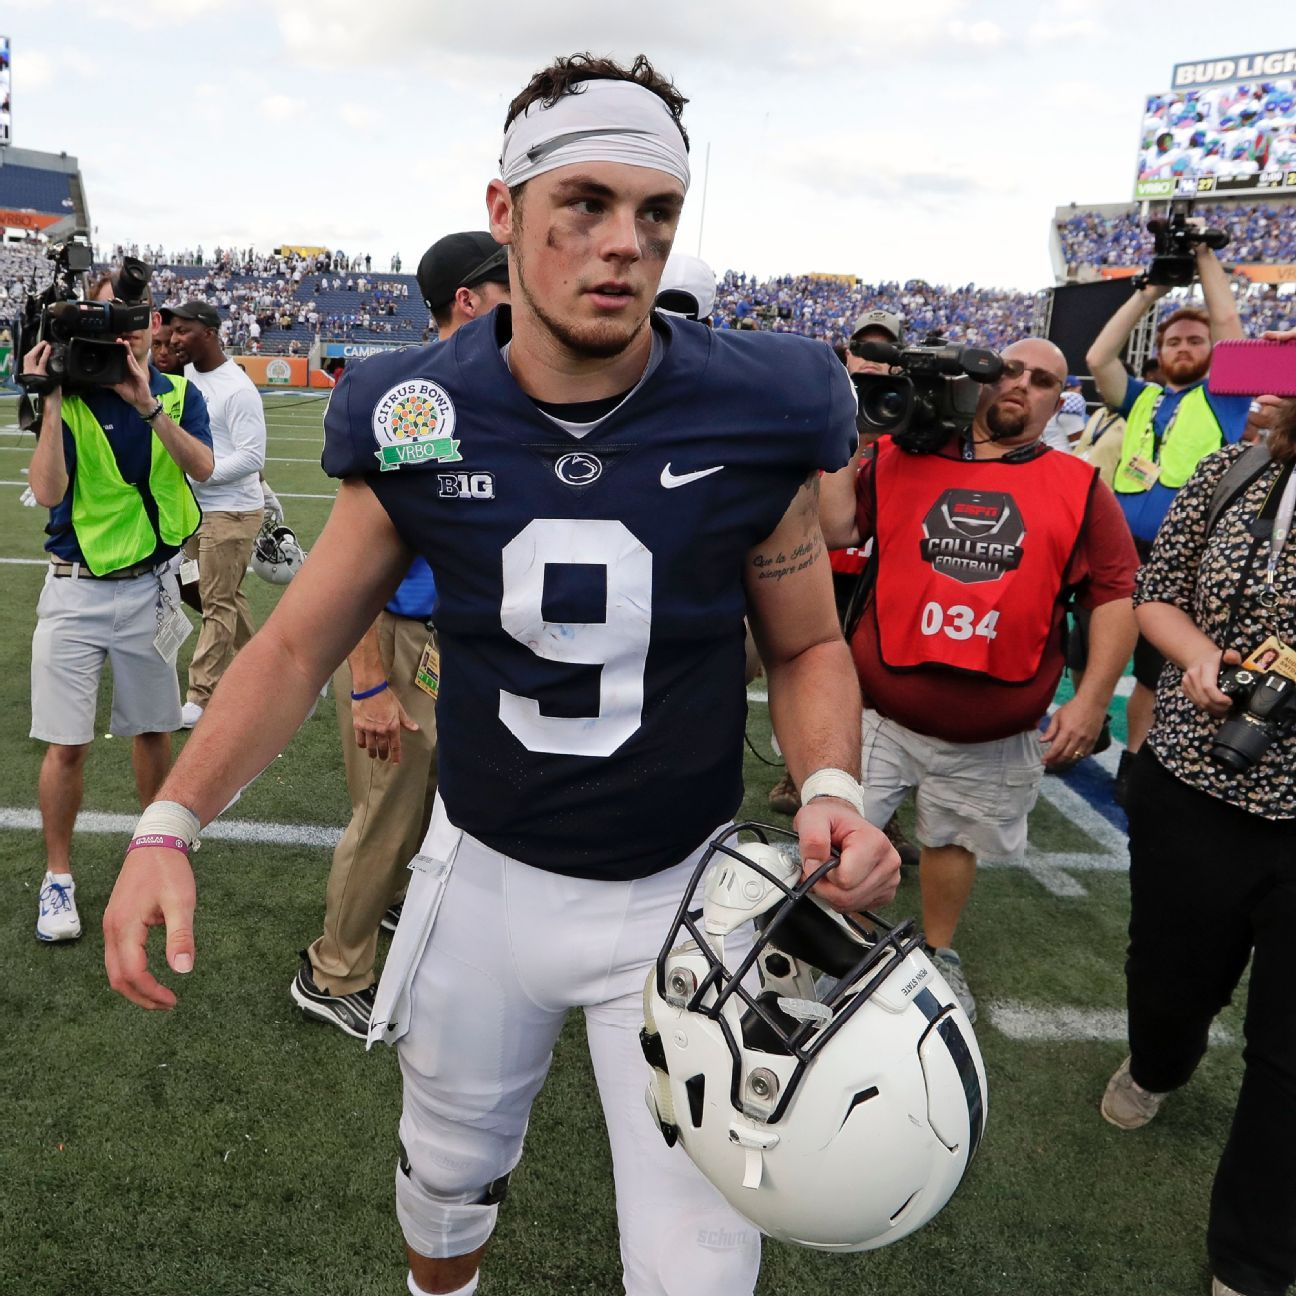 online store 44dde 3351c Penn State QB Trace McSorley plays through foot injury vs ...